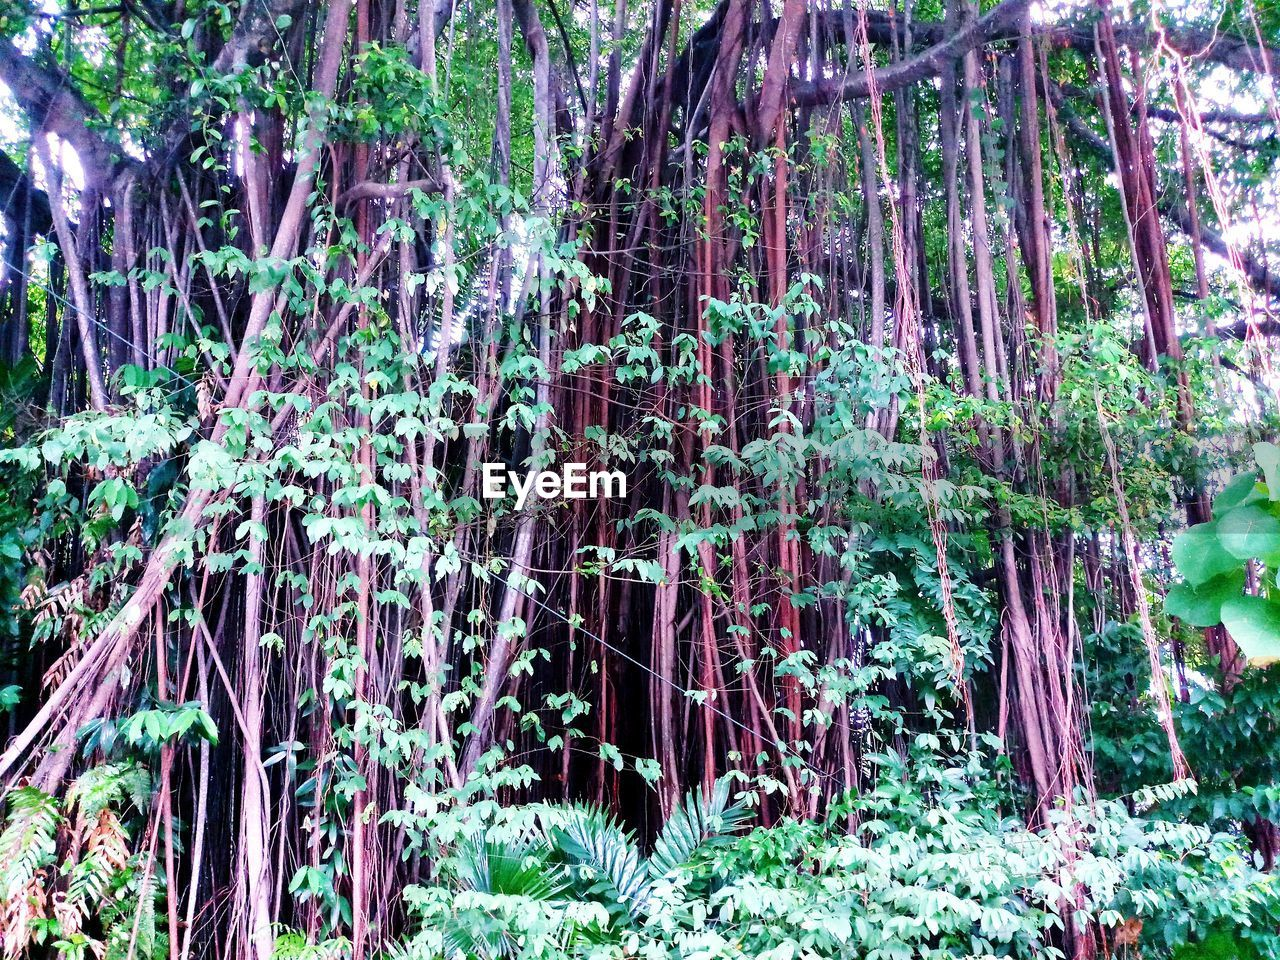 plant, forest, growth, tree, land, nature, beauty in nature, day, no people, outdoors, tranquility, plant part, foliage, leaf, lush foliage, green color, environment, waterfall, woodland, scenics - nature, bamboo - plant, rainforest